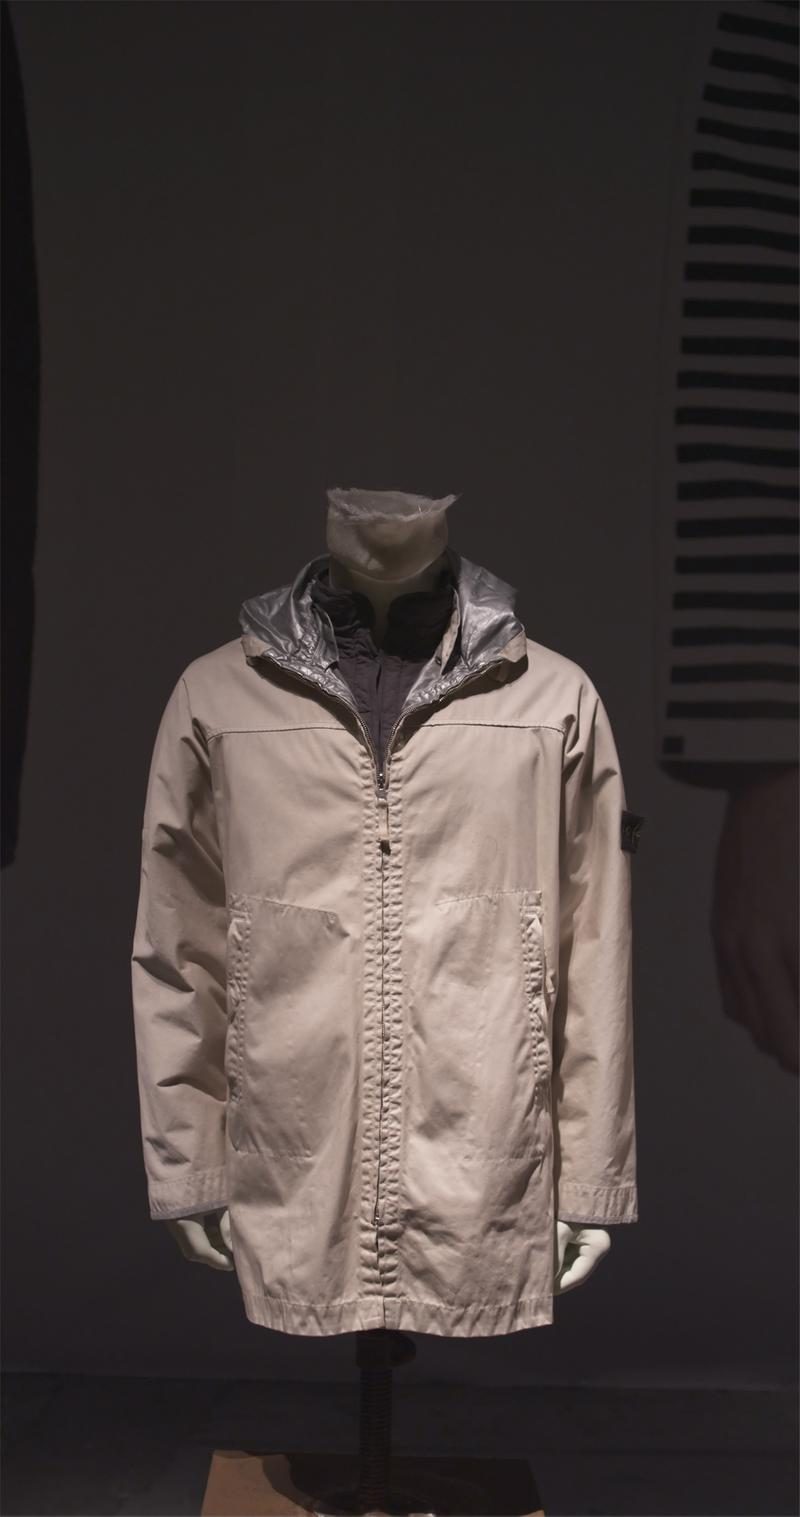 Off white long zip up jacket with side pockets, silver lining and Stone Island badge on left sleeve displayed on mannequin bust